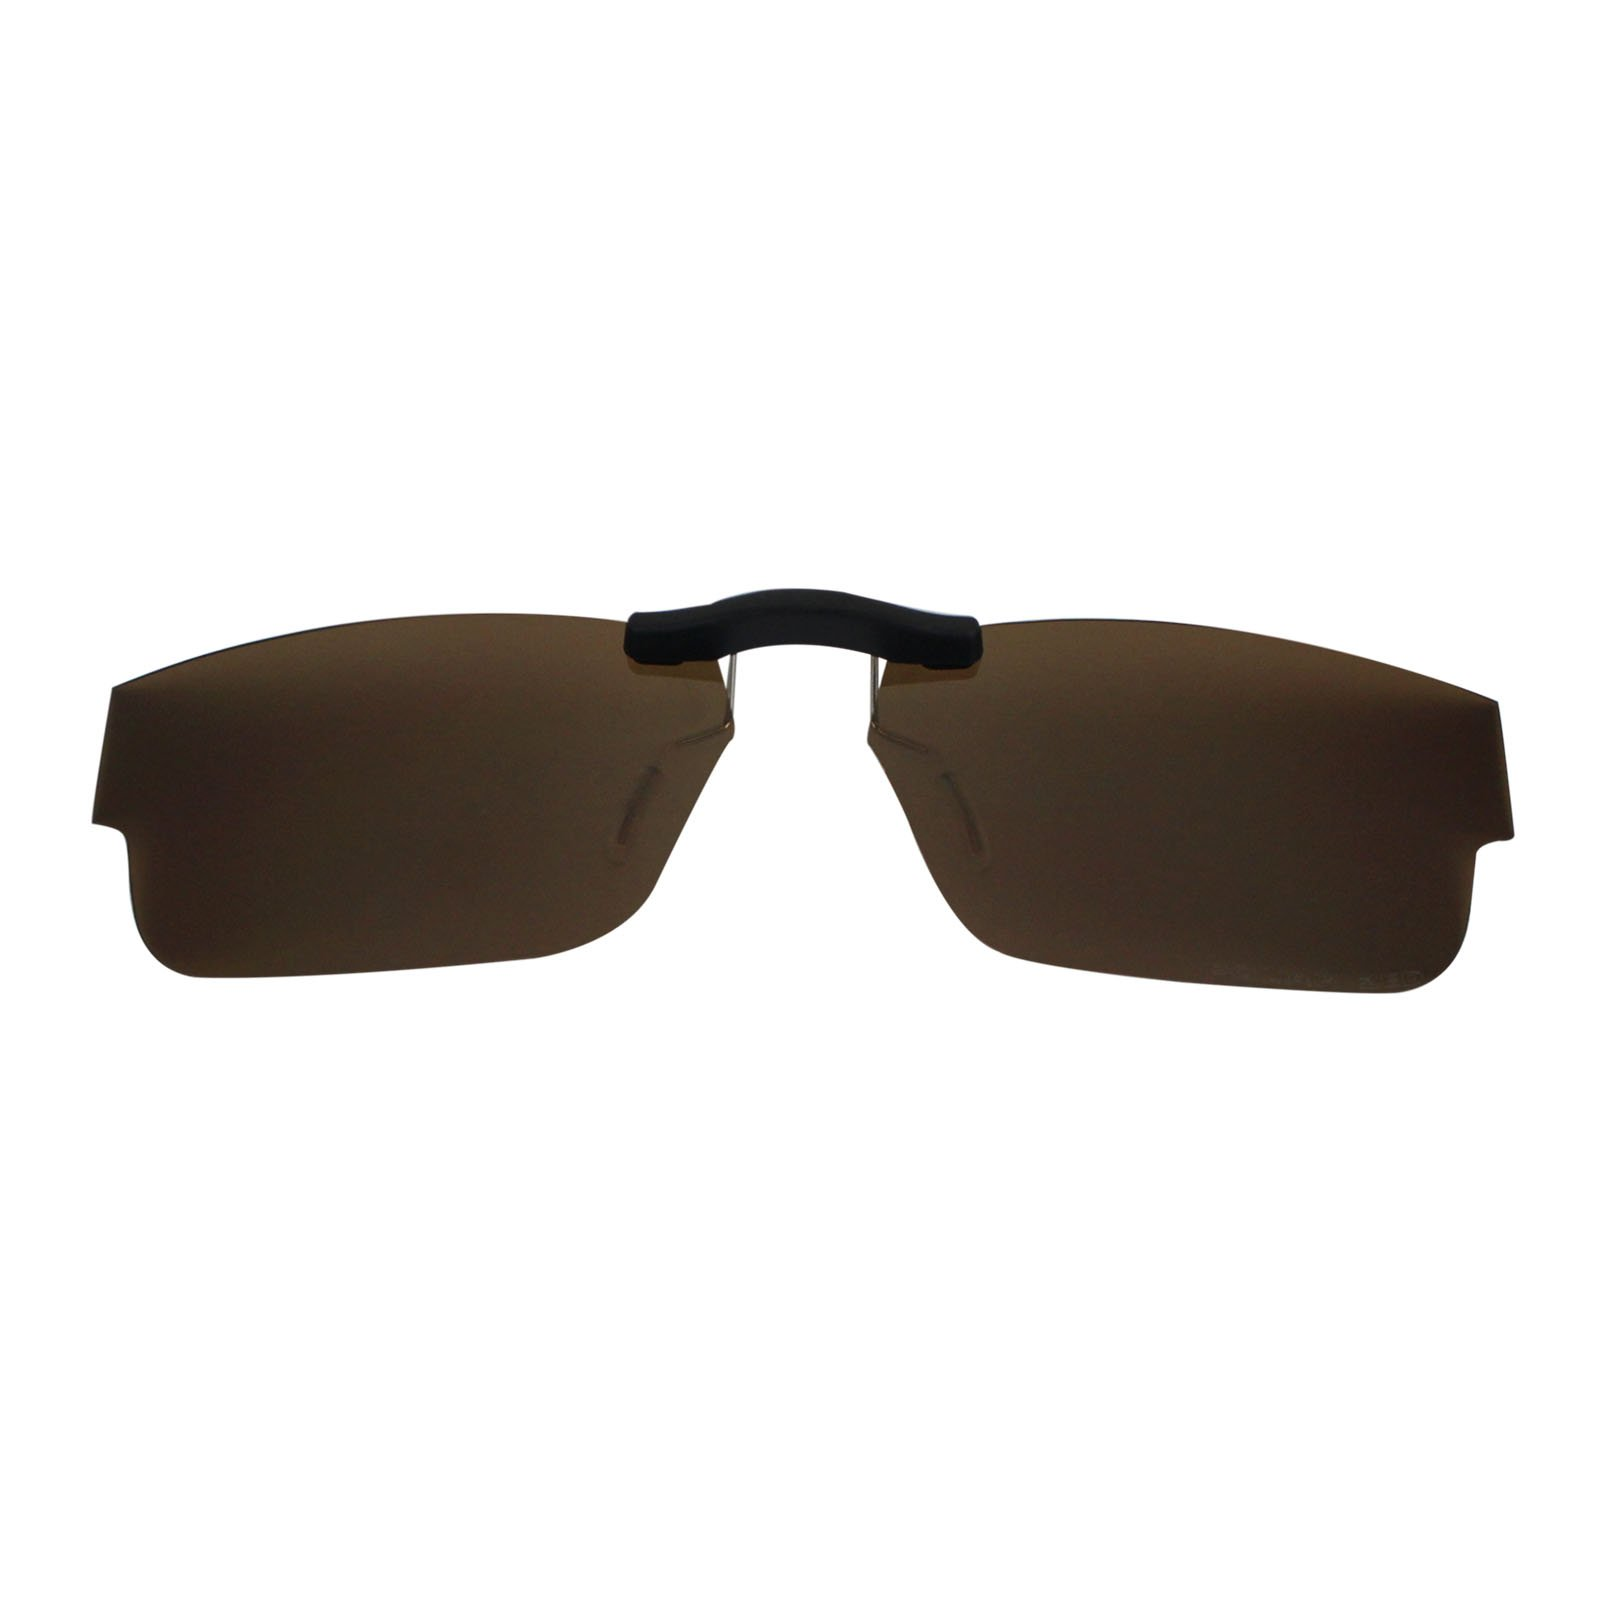 Custom Polarized Clip on Sunglasses For Oakley Airdrop 51 OX8046 51-18-143 (Brown) by oGeee (Image #2)